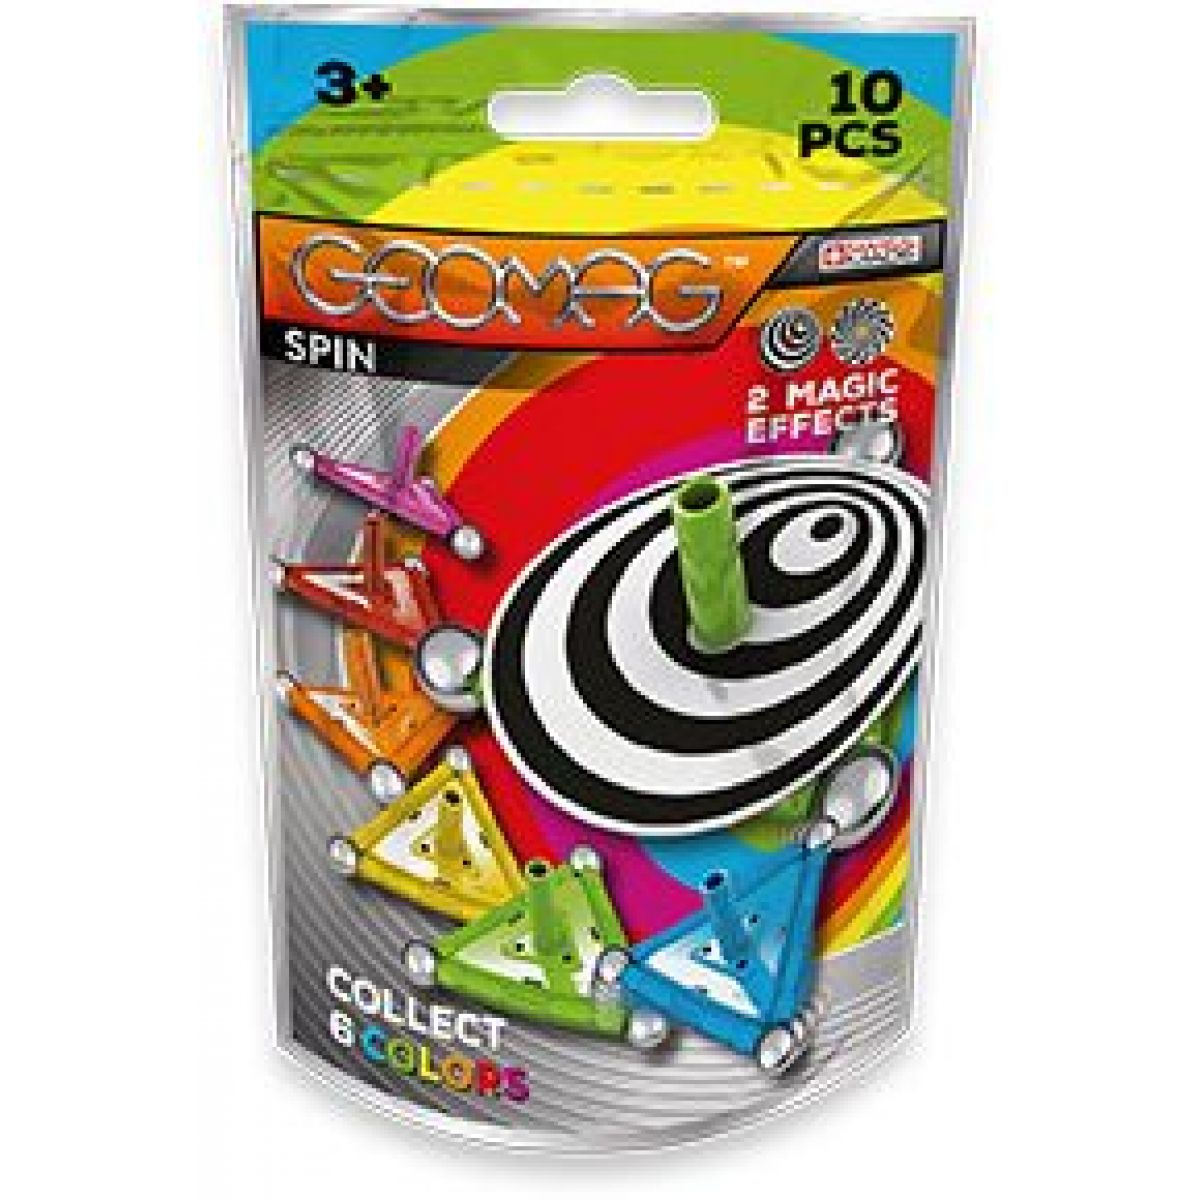 Geomag Spin 10pcs